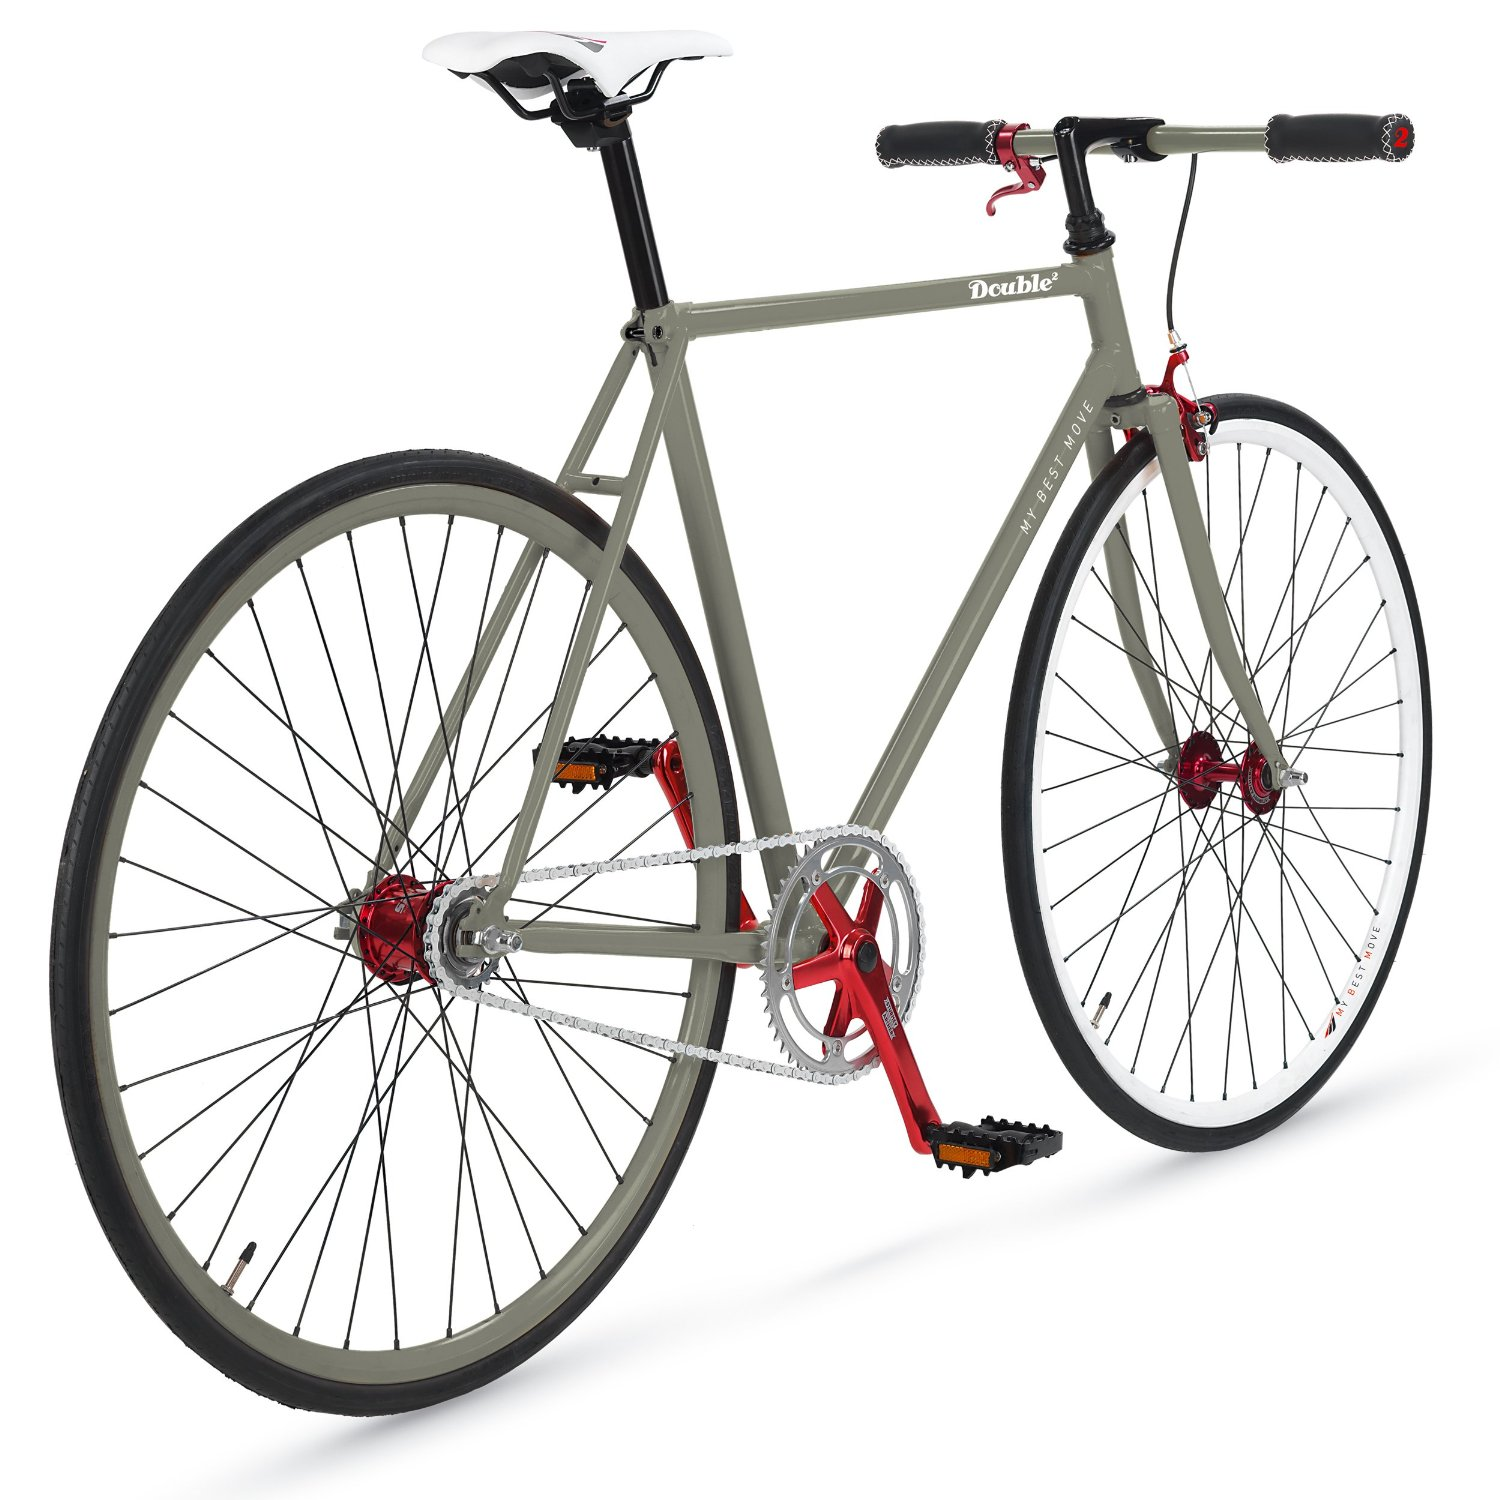 MBM Singlespeed Fixie